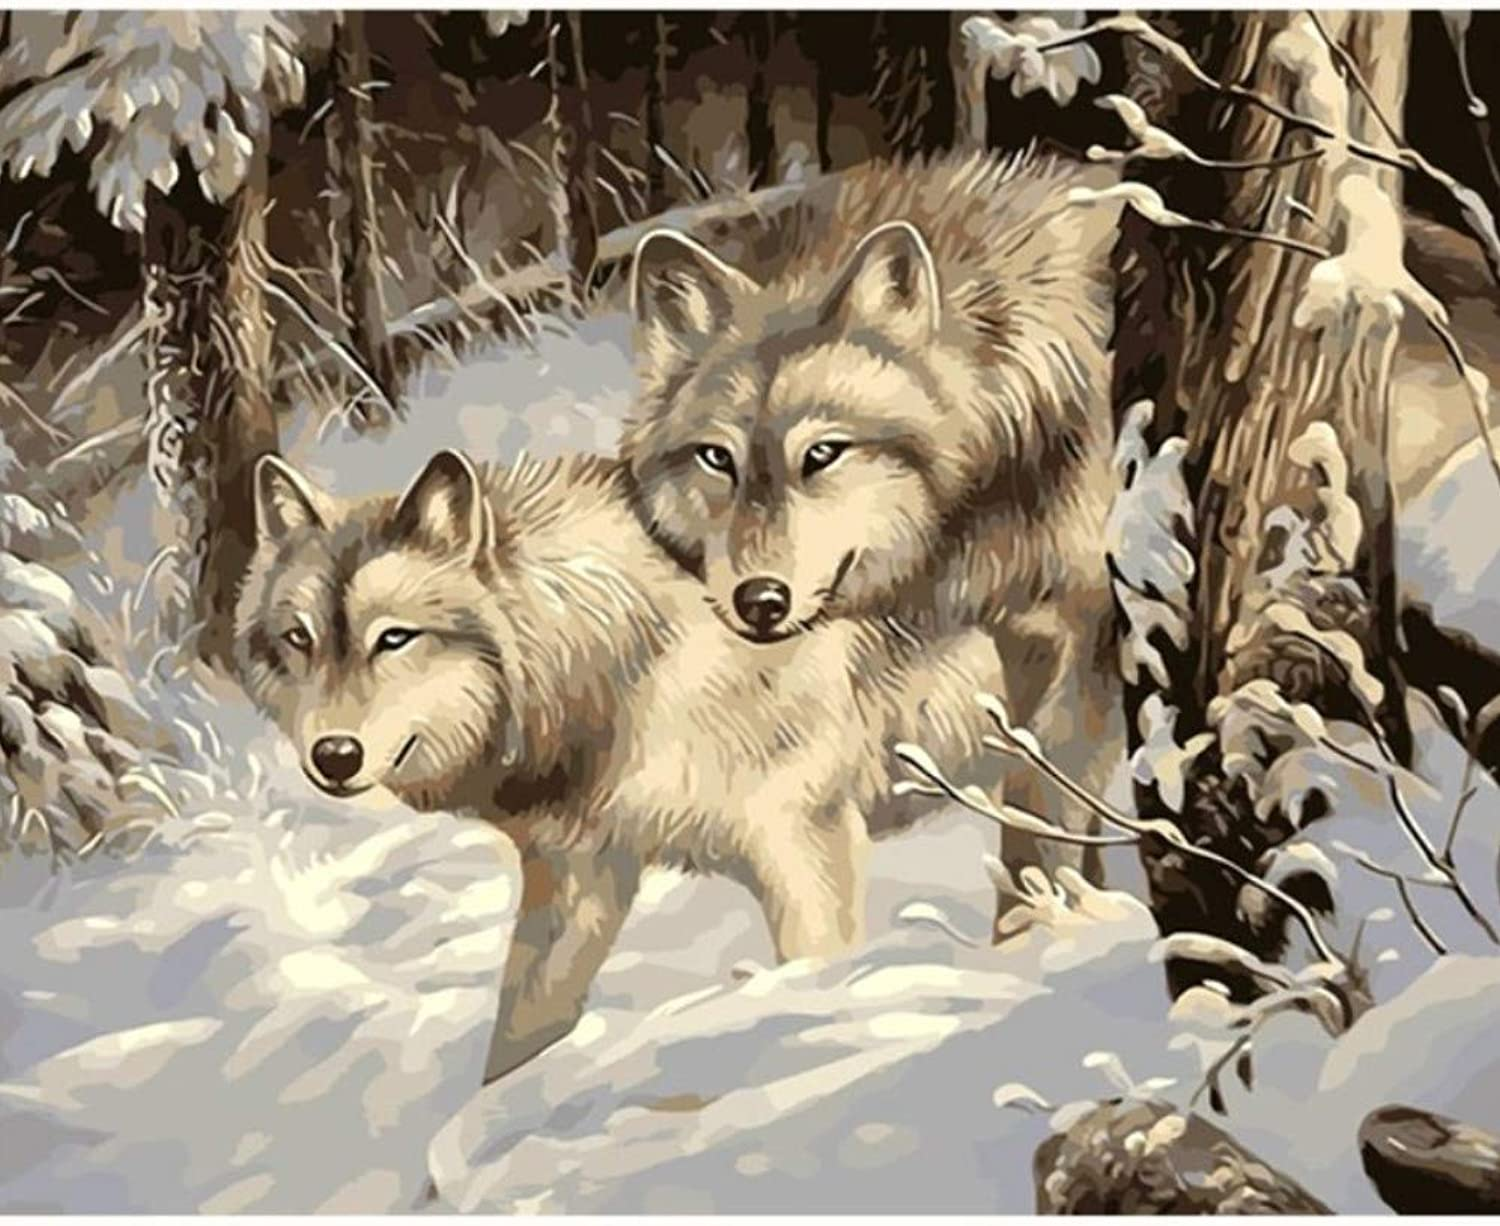 Wolf Snow Night Wolves Animal Painting by Numbers Canvas Painting Print On Canvas Unique Gift Home Decor Wall Artwork Hand Paint 50x60CM